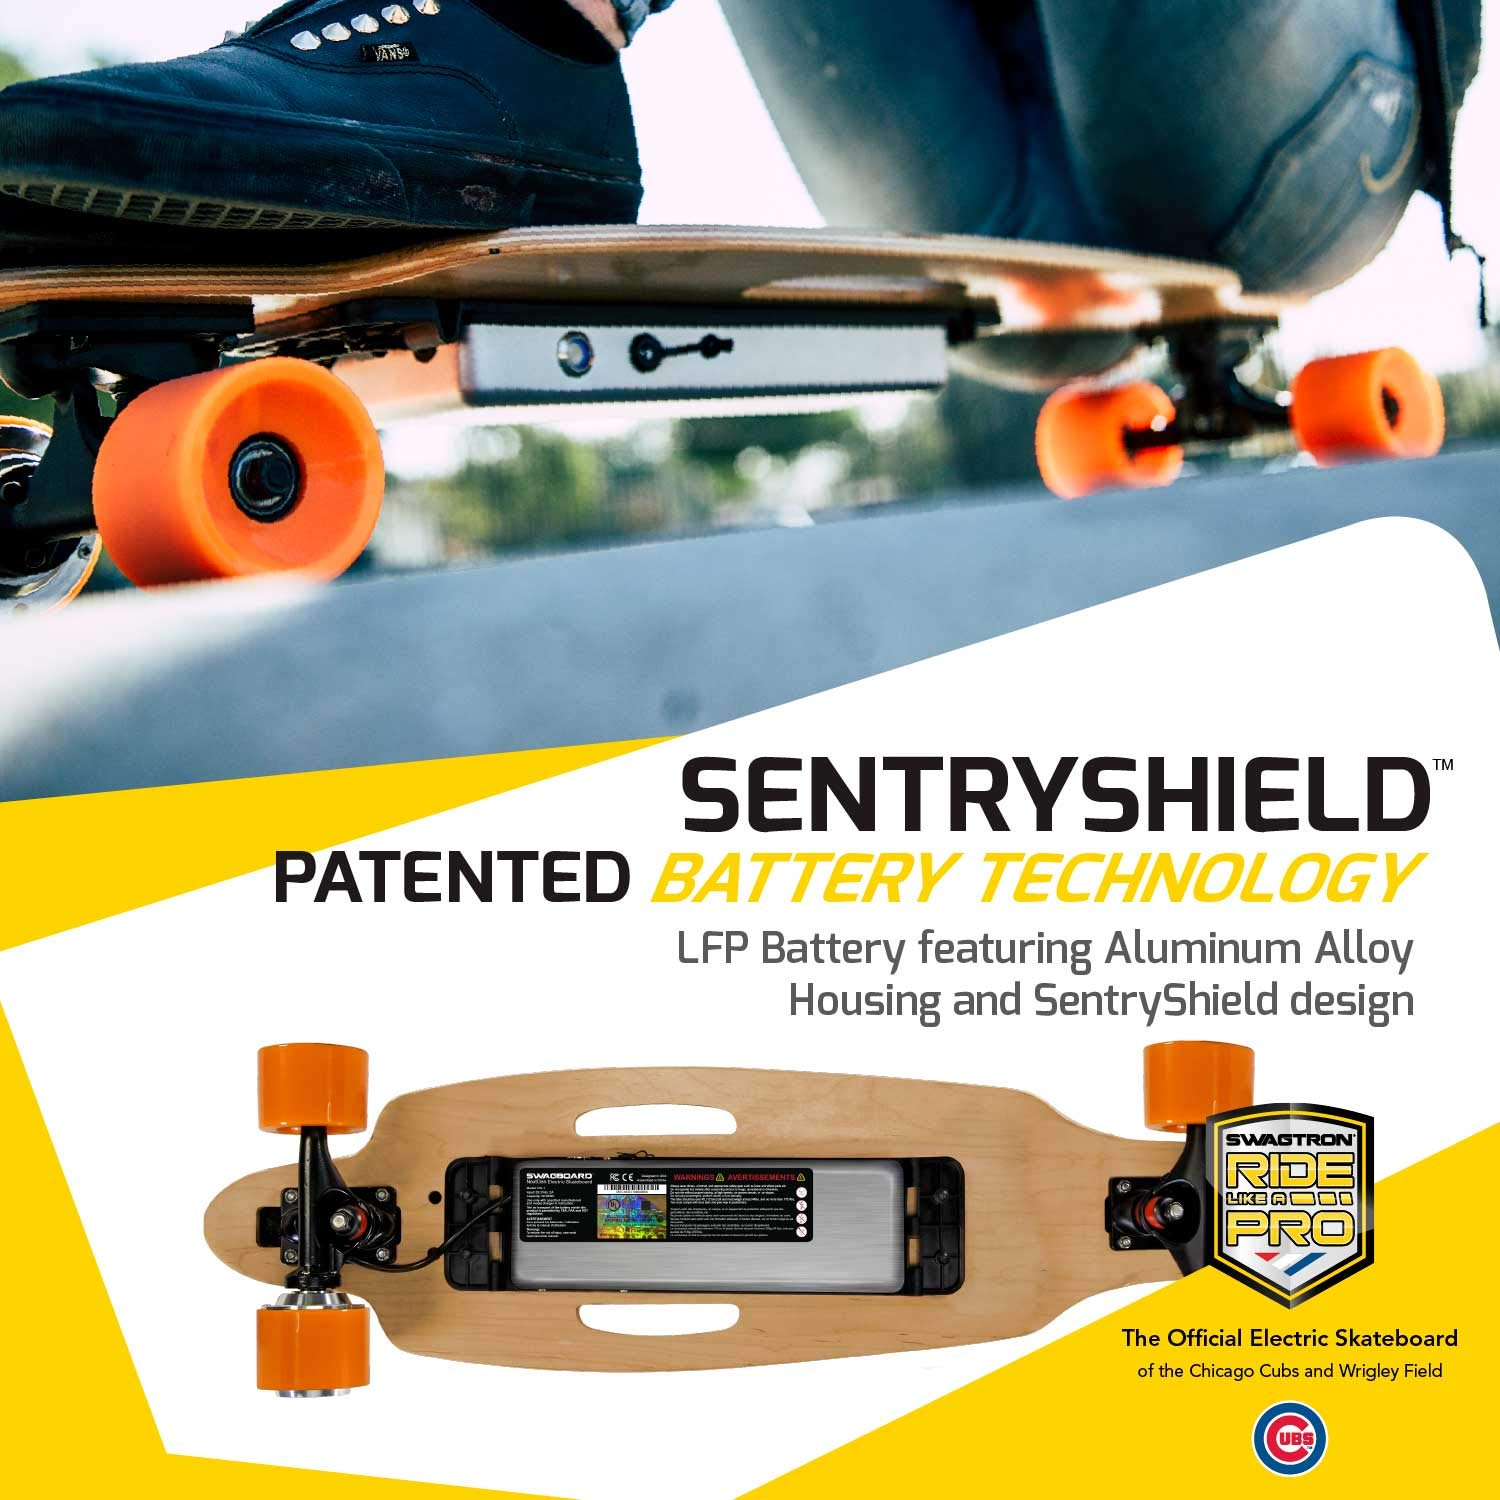 amazon com : swagtron swagboard ng-1 youth electric longboard : sports &  outdoors